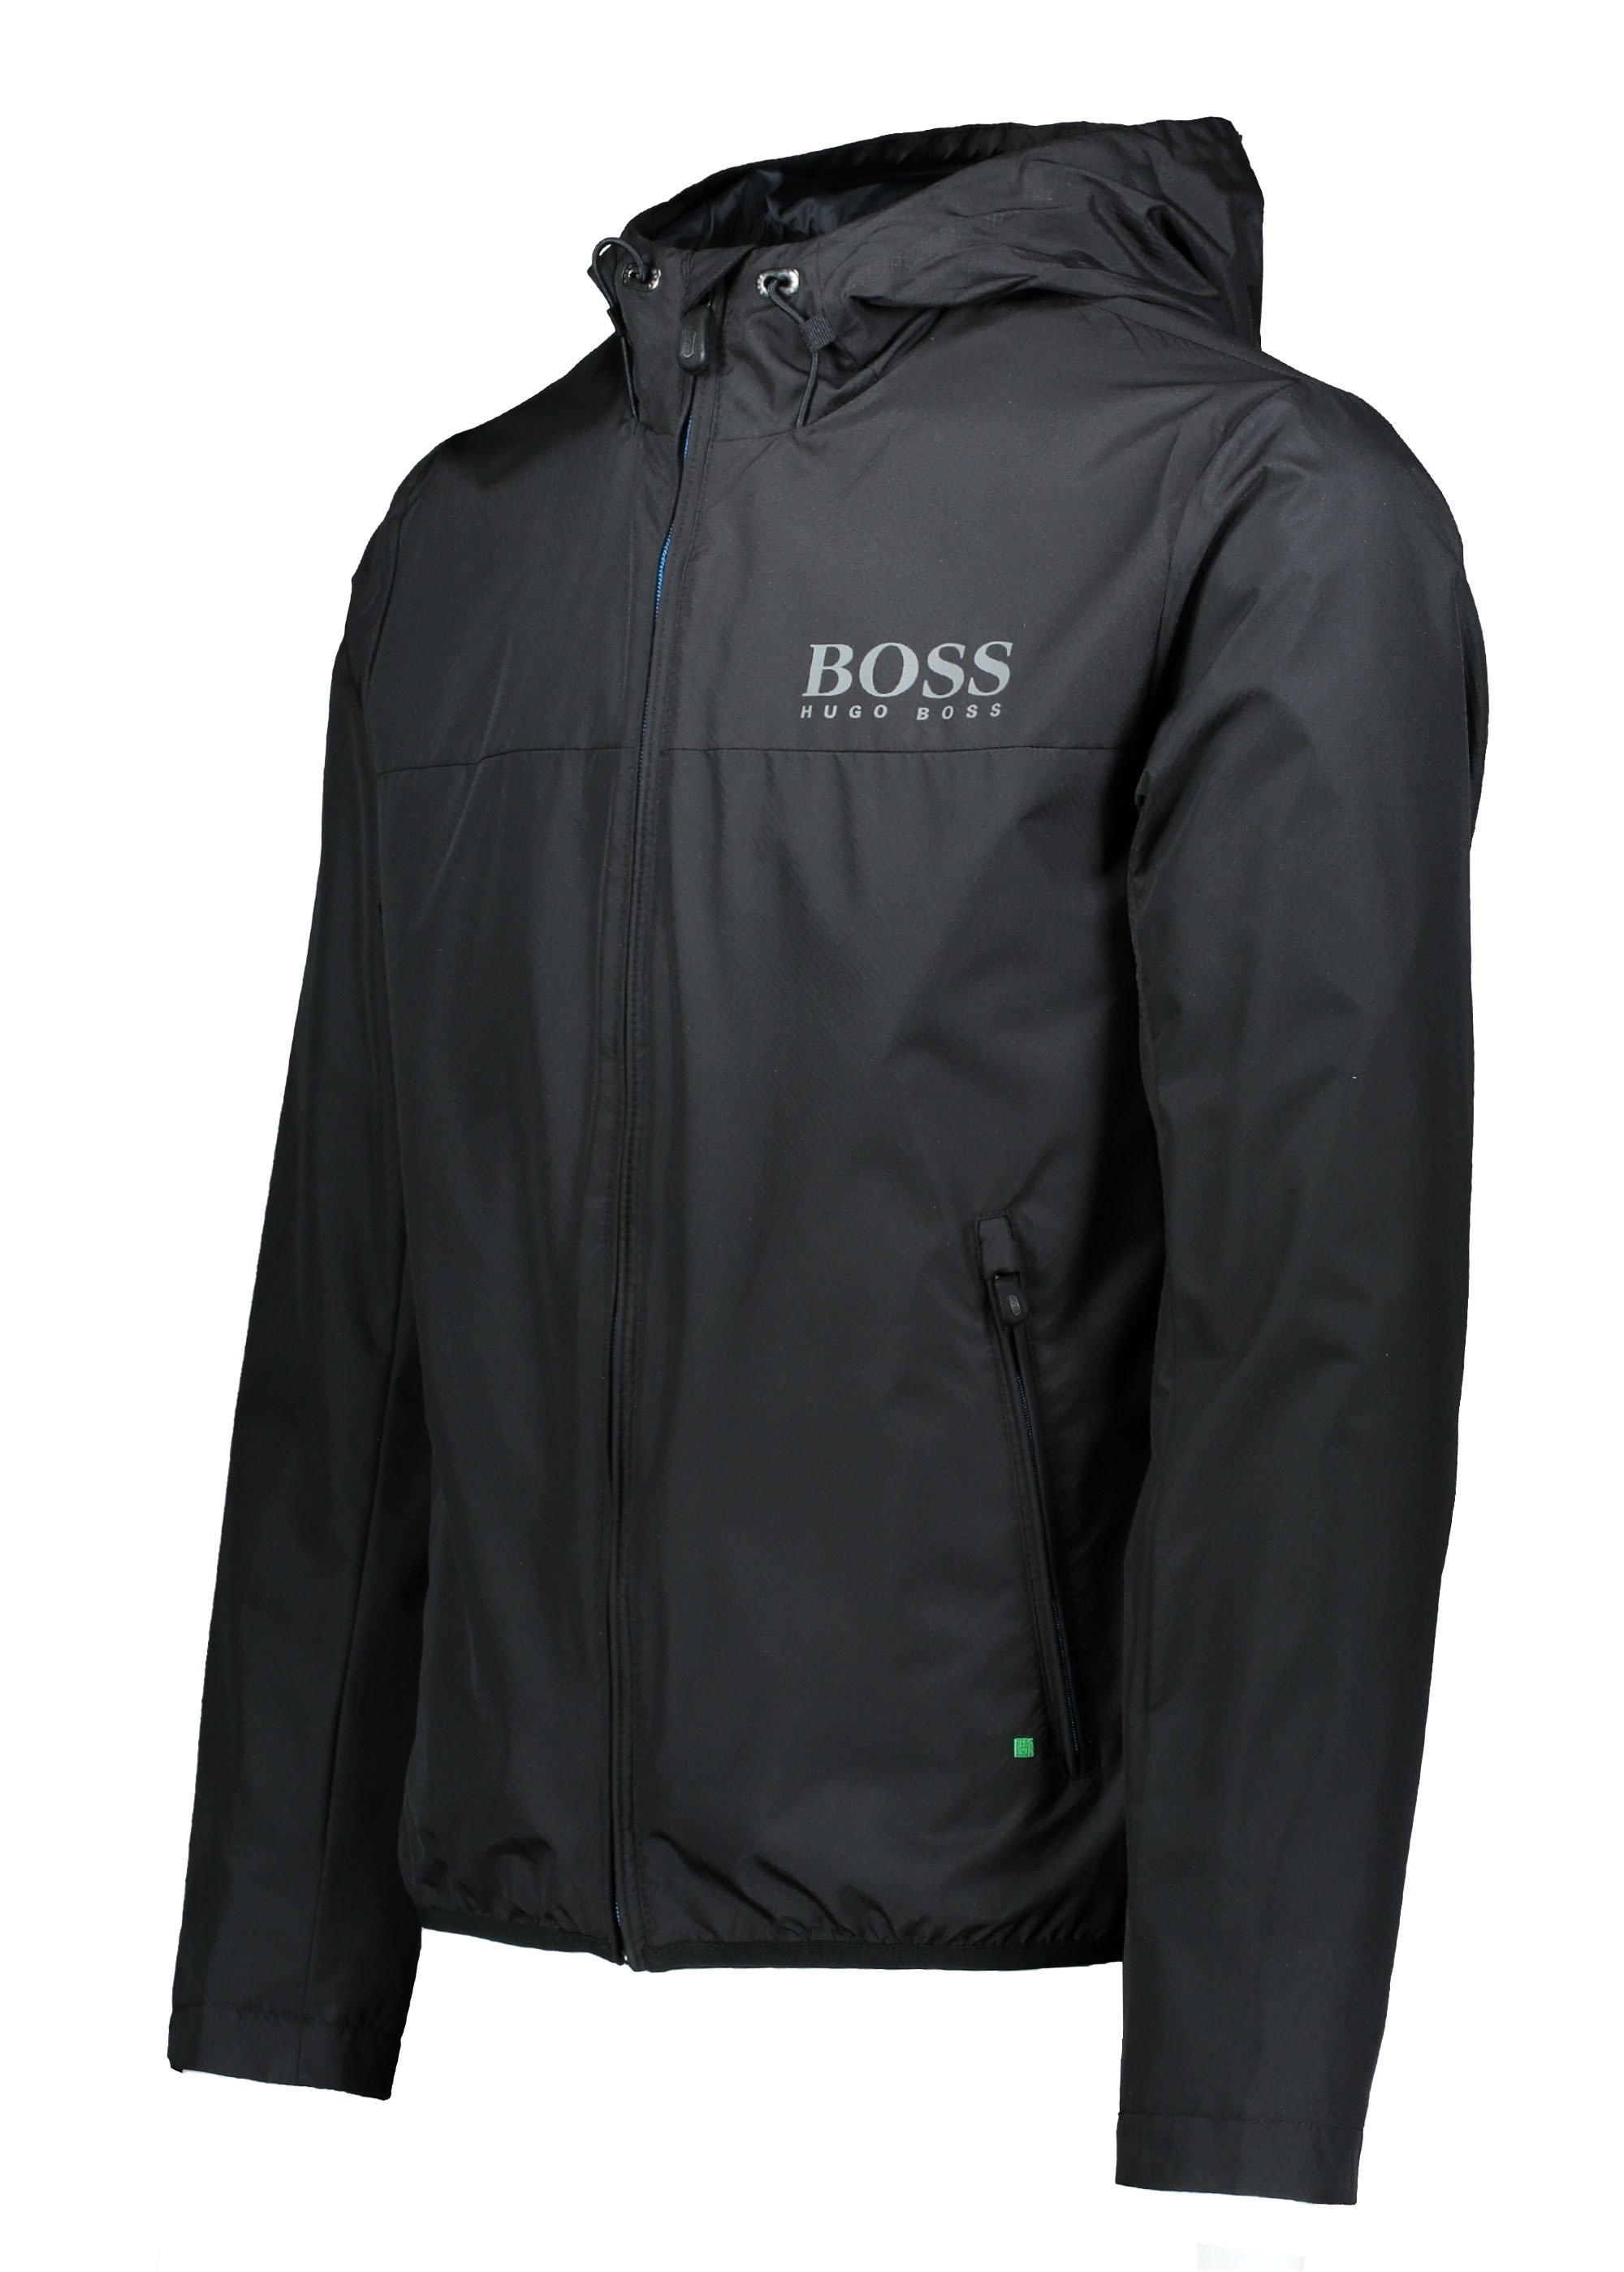 f31acbcd727c BOSS Jeltech Jacket - Black - Triads Mens from Triads UK